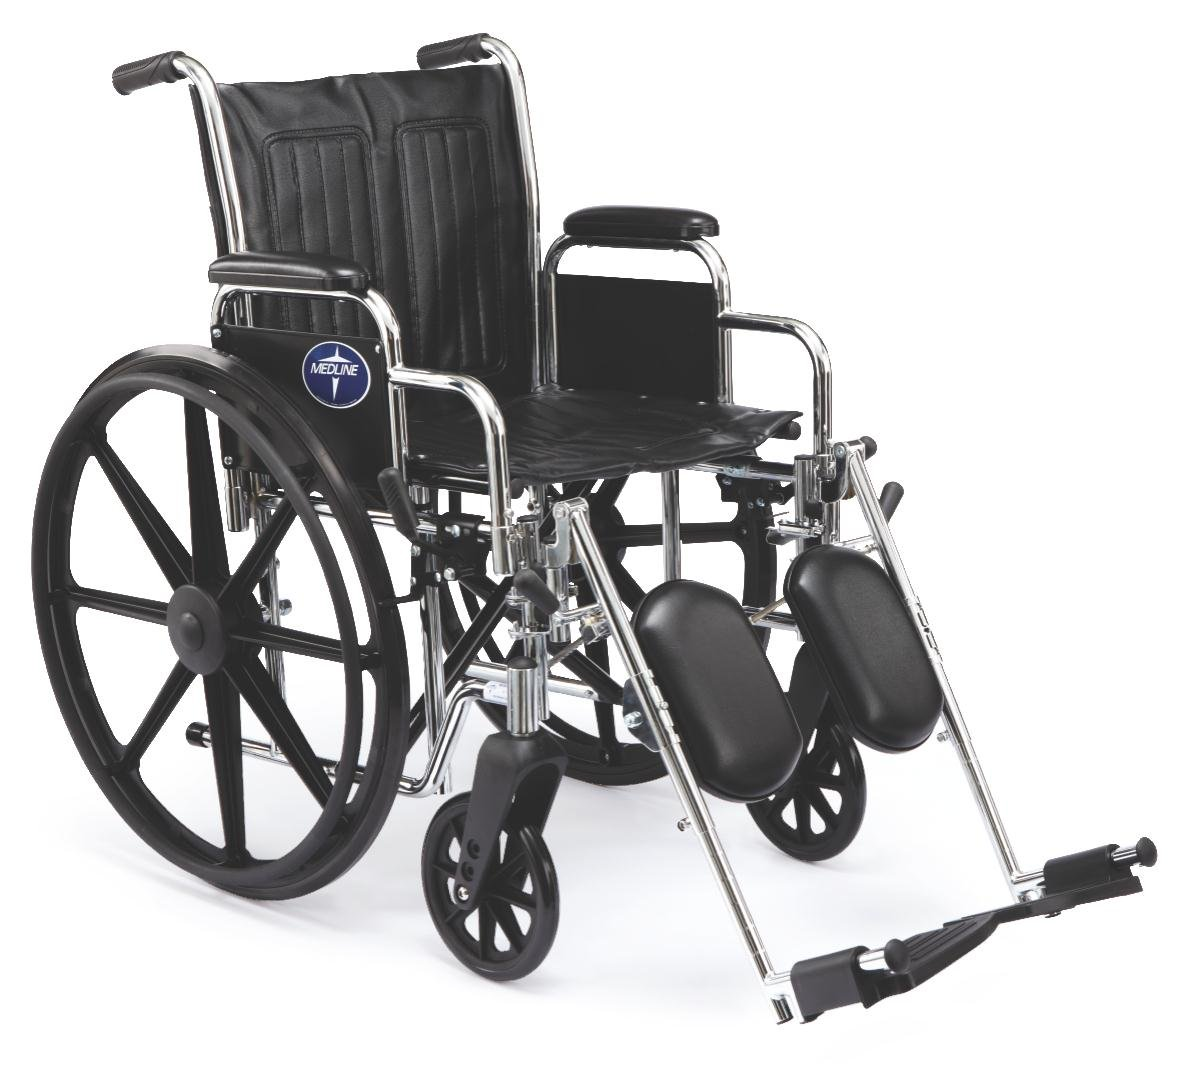 Medline Excel 2000 Wheelchair, 18'' Wide Seat, Desk-Length Arms, Swing Away Footrests, Chrome Frame